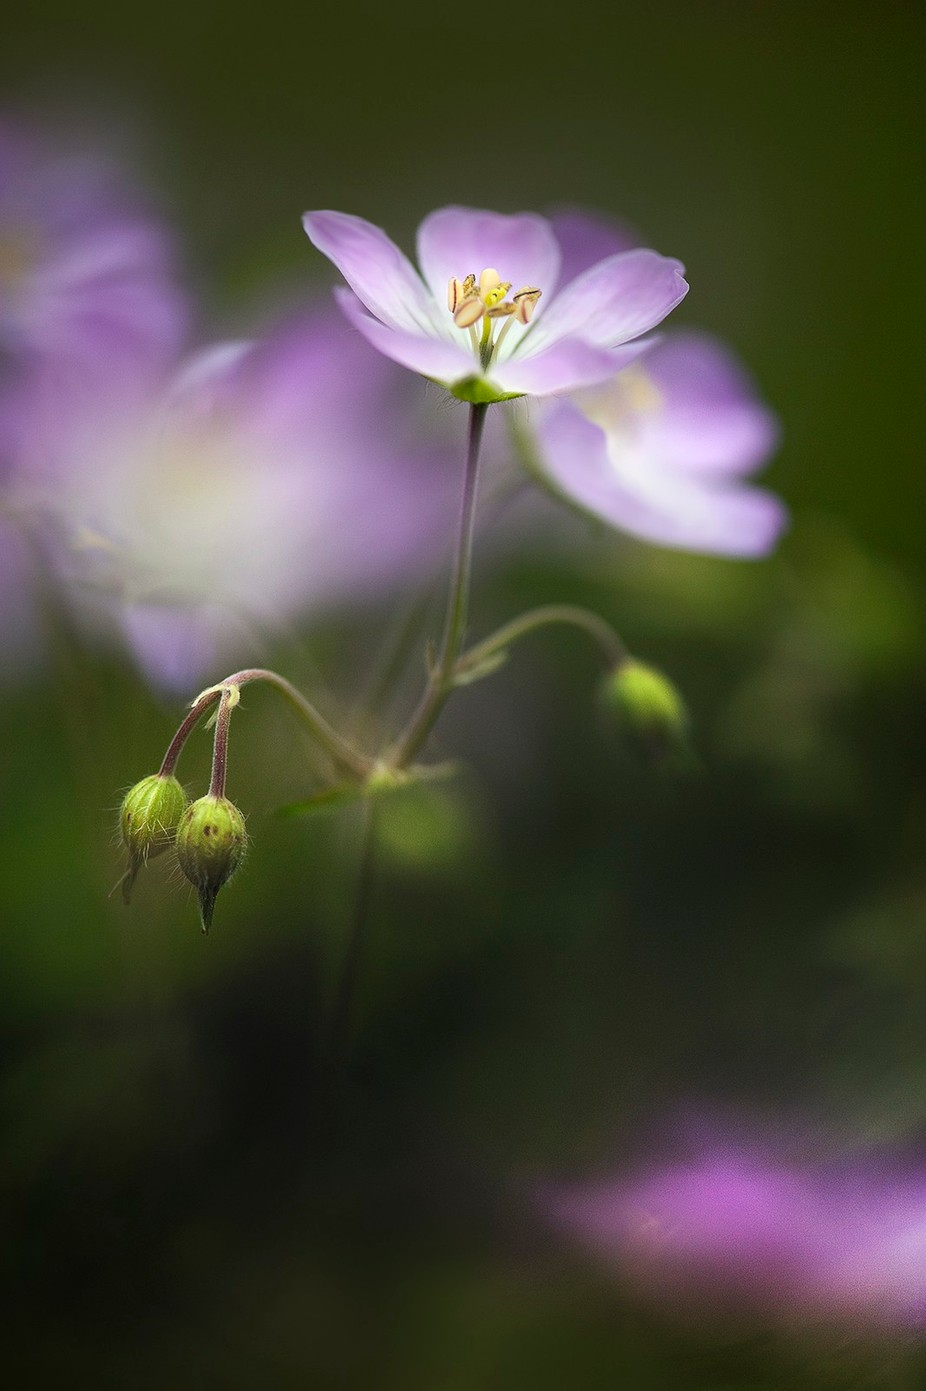 Flower and buds by MJLara - Macro And Patterns Photo Contest